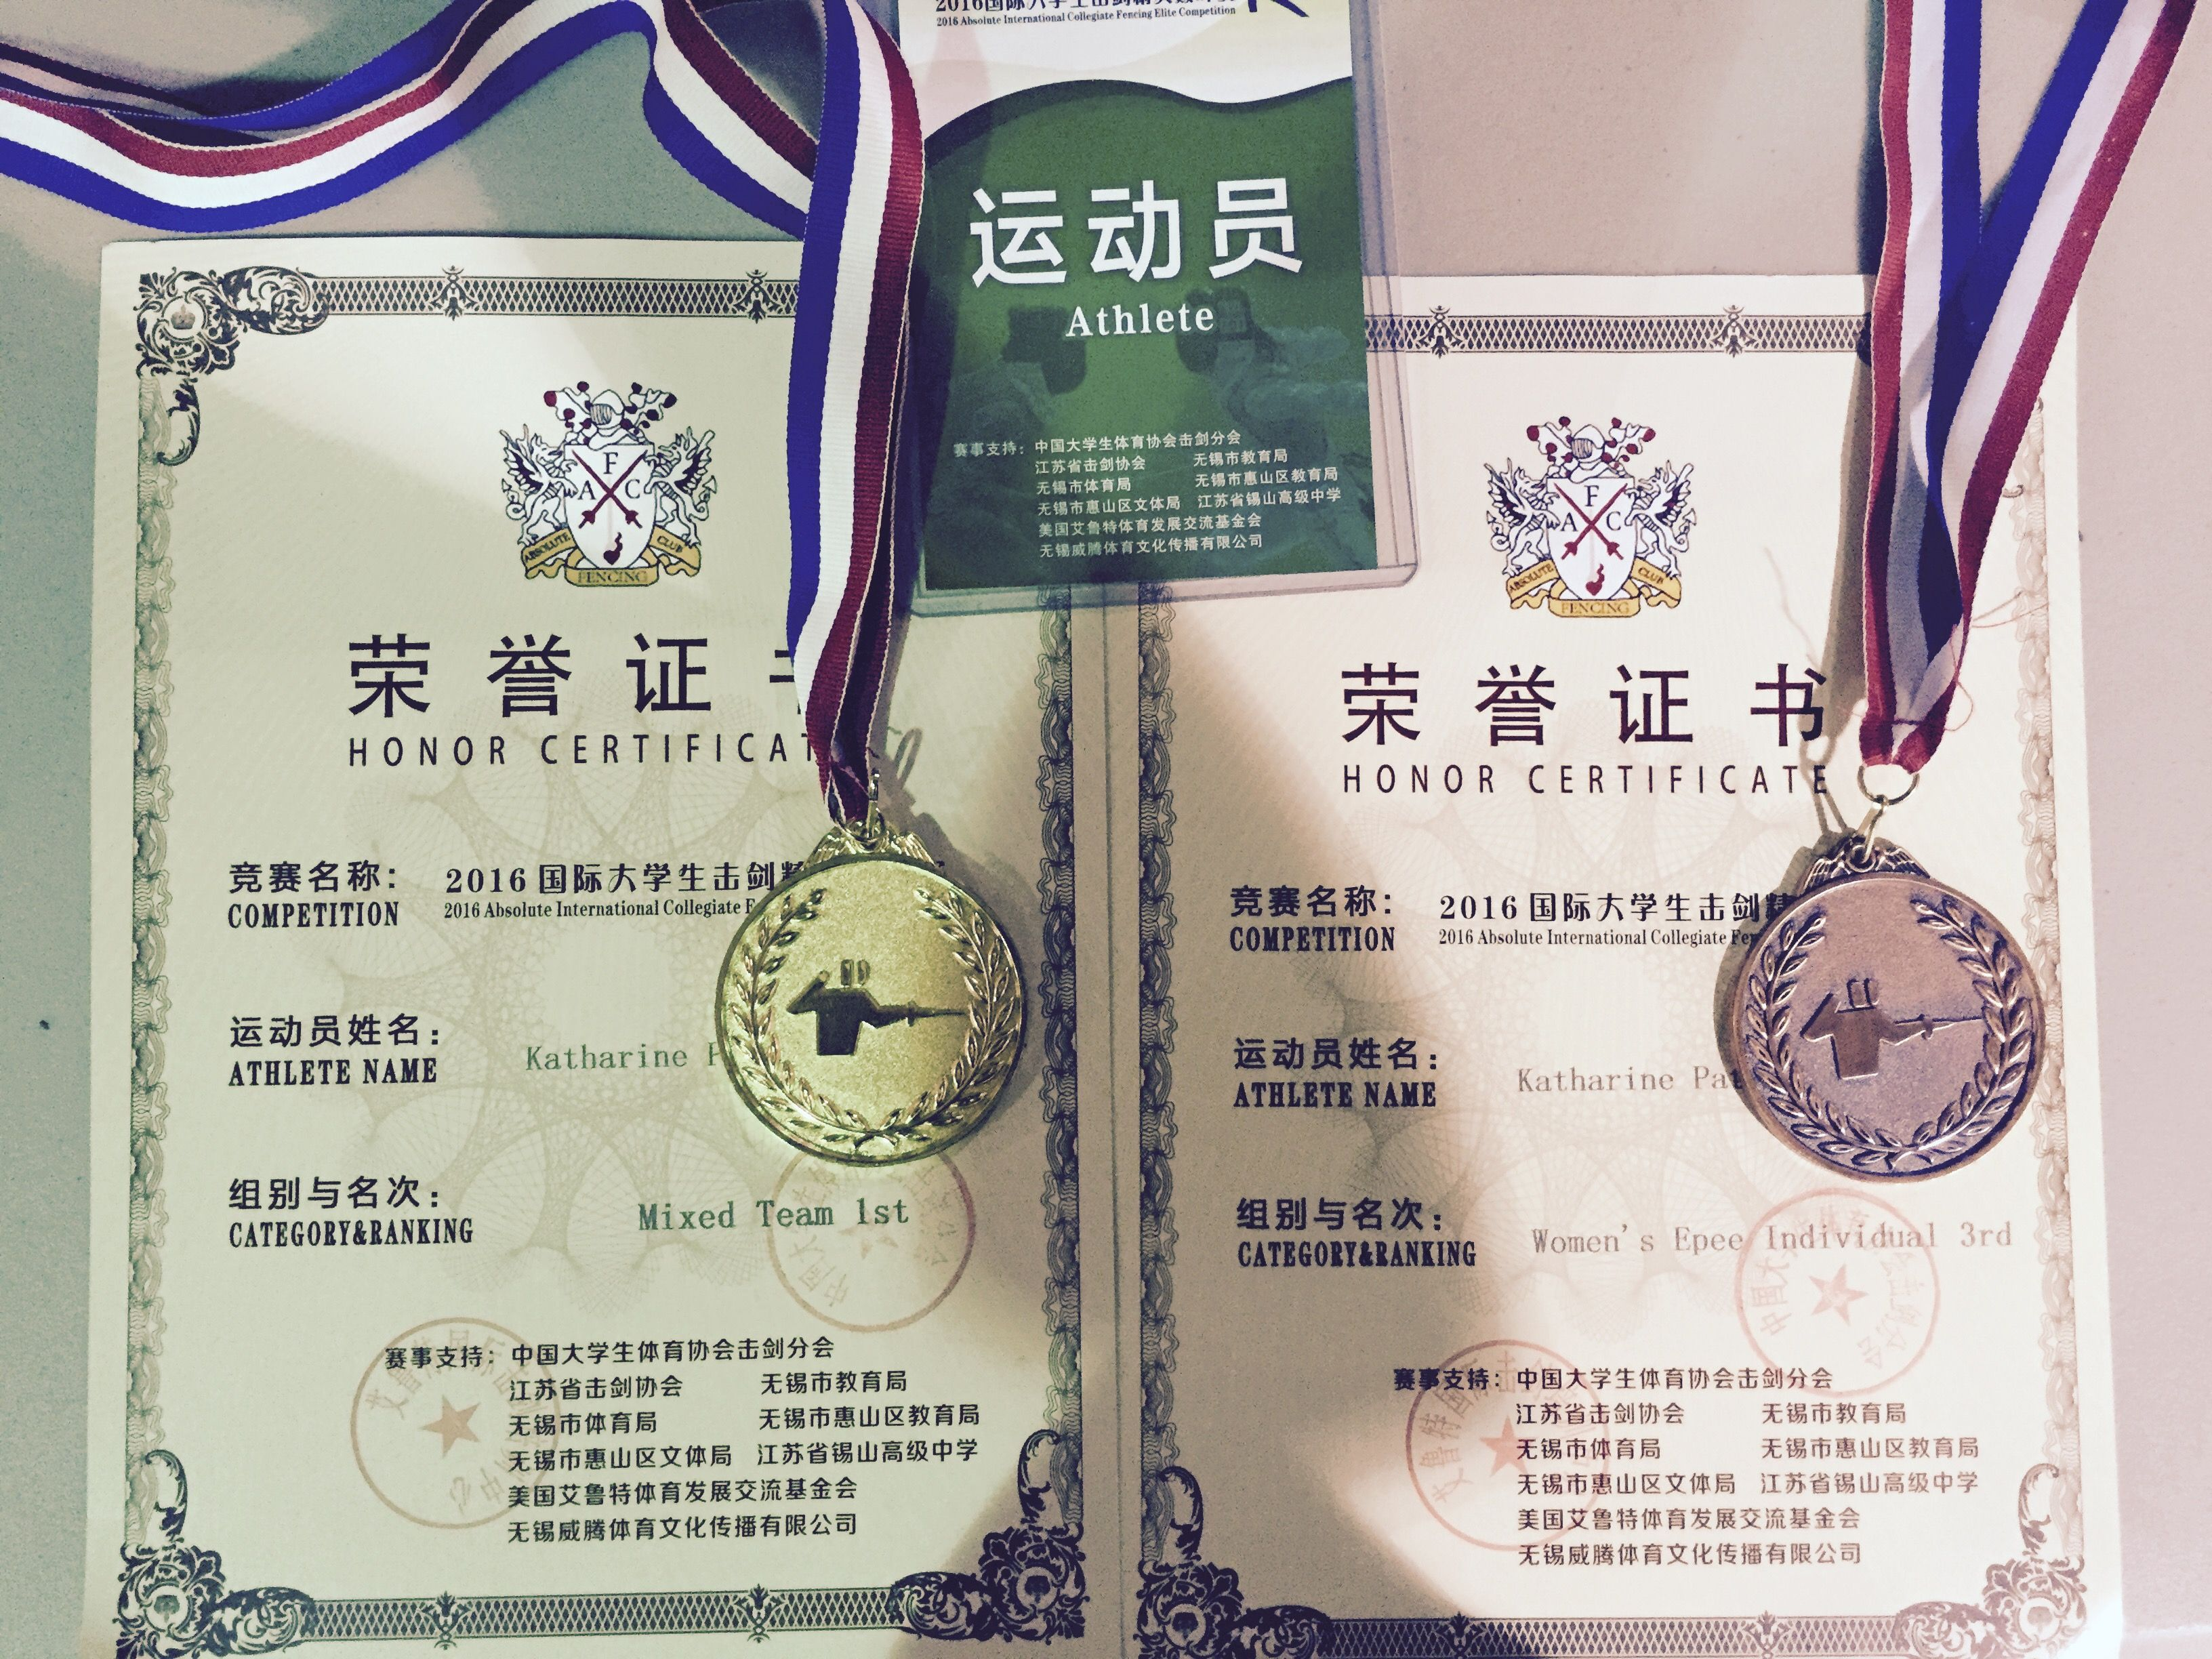 Congratulations to Northwestern University fencer (and DFC alum) Katie V on earning the Gold medal in the Team event and Bronze medal in the Individual event at the 2016 Absolute International Collegiate Fencing Elite Competition in Wuxi, China last week. Collegiate teams from the US, Korea and China competed